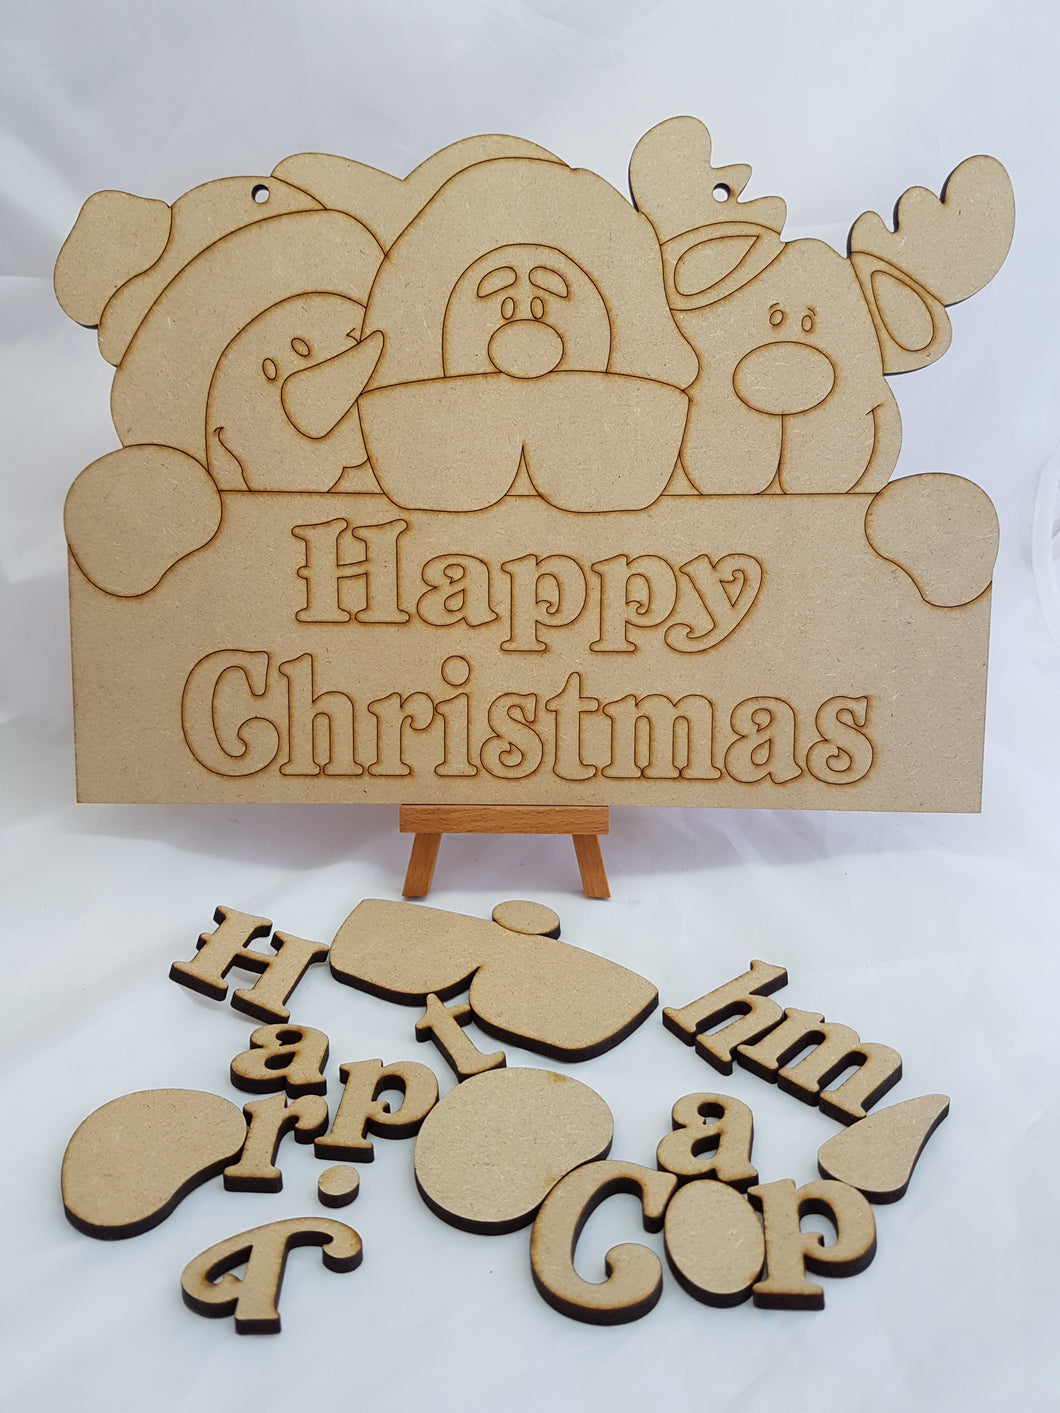 3D Christmas Friends 'Happy Christmas' Wall Hanging